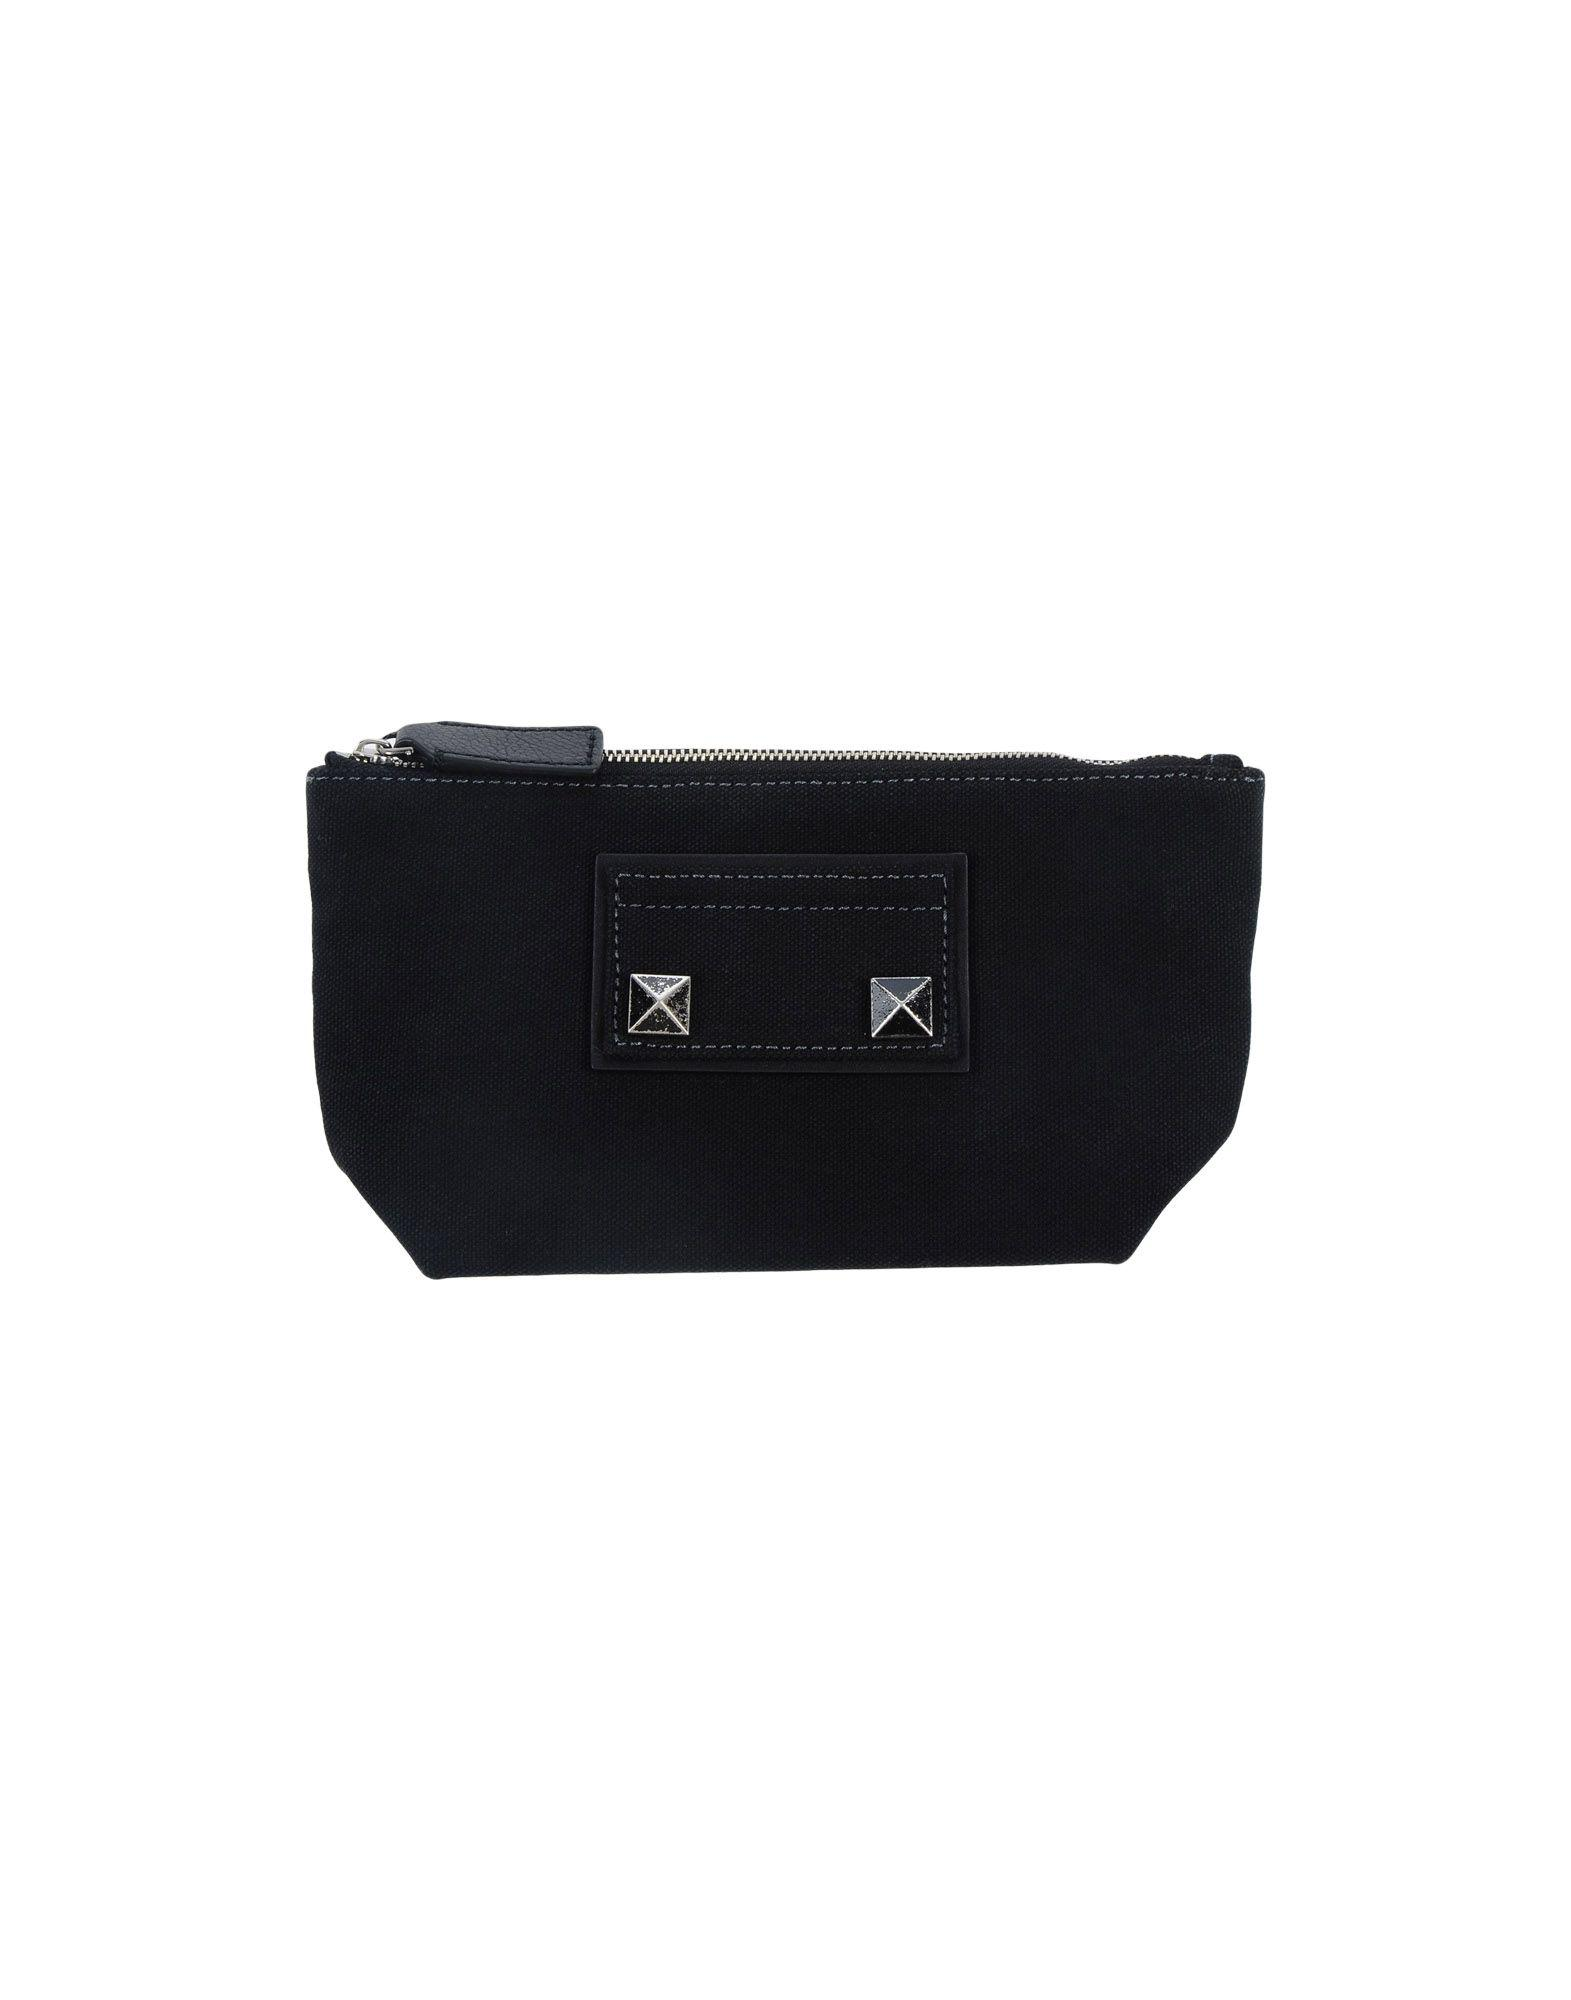 Marc Jacobs Pouch In Black